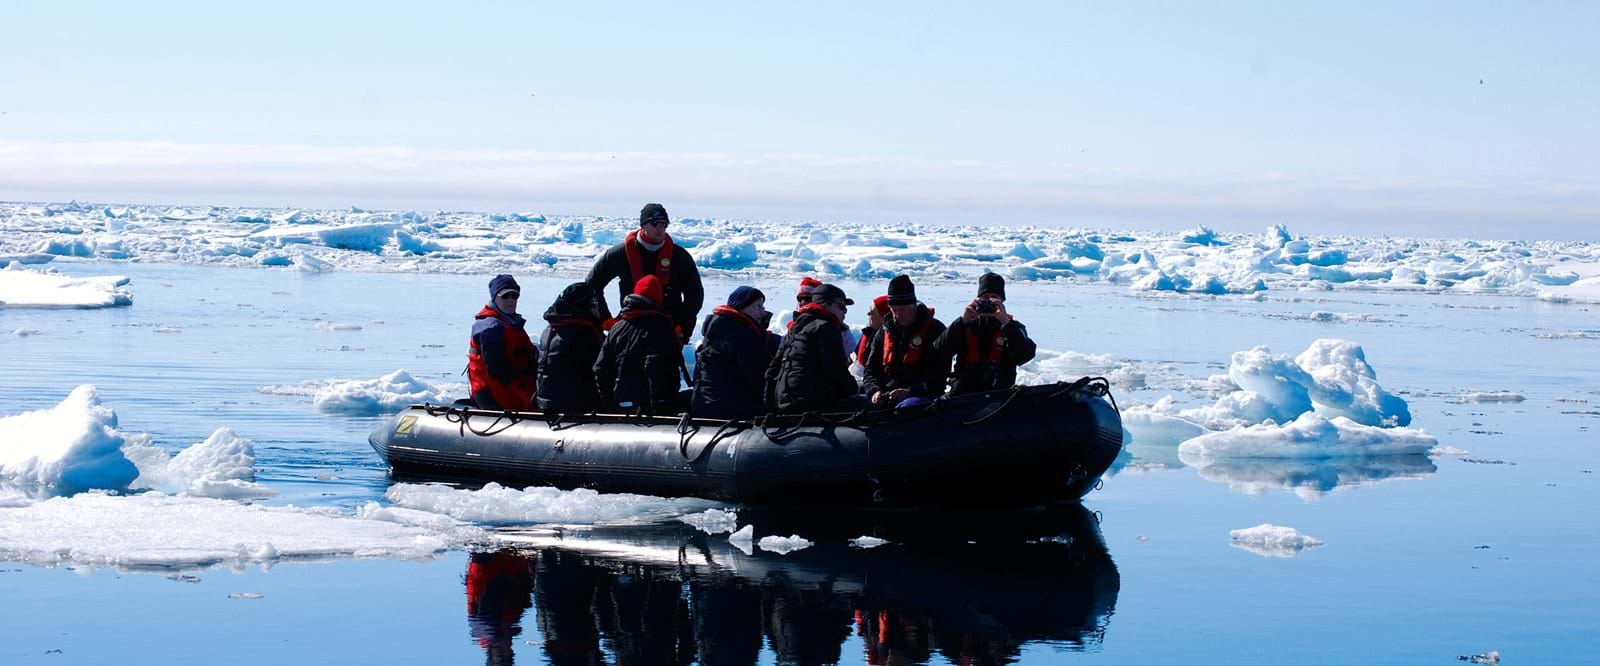 Svalbard, Arctic expedition, Arctic cruise